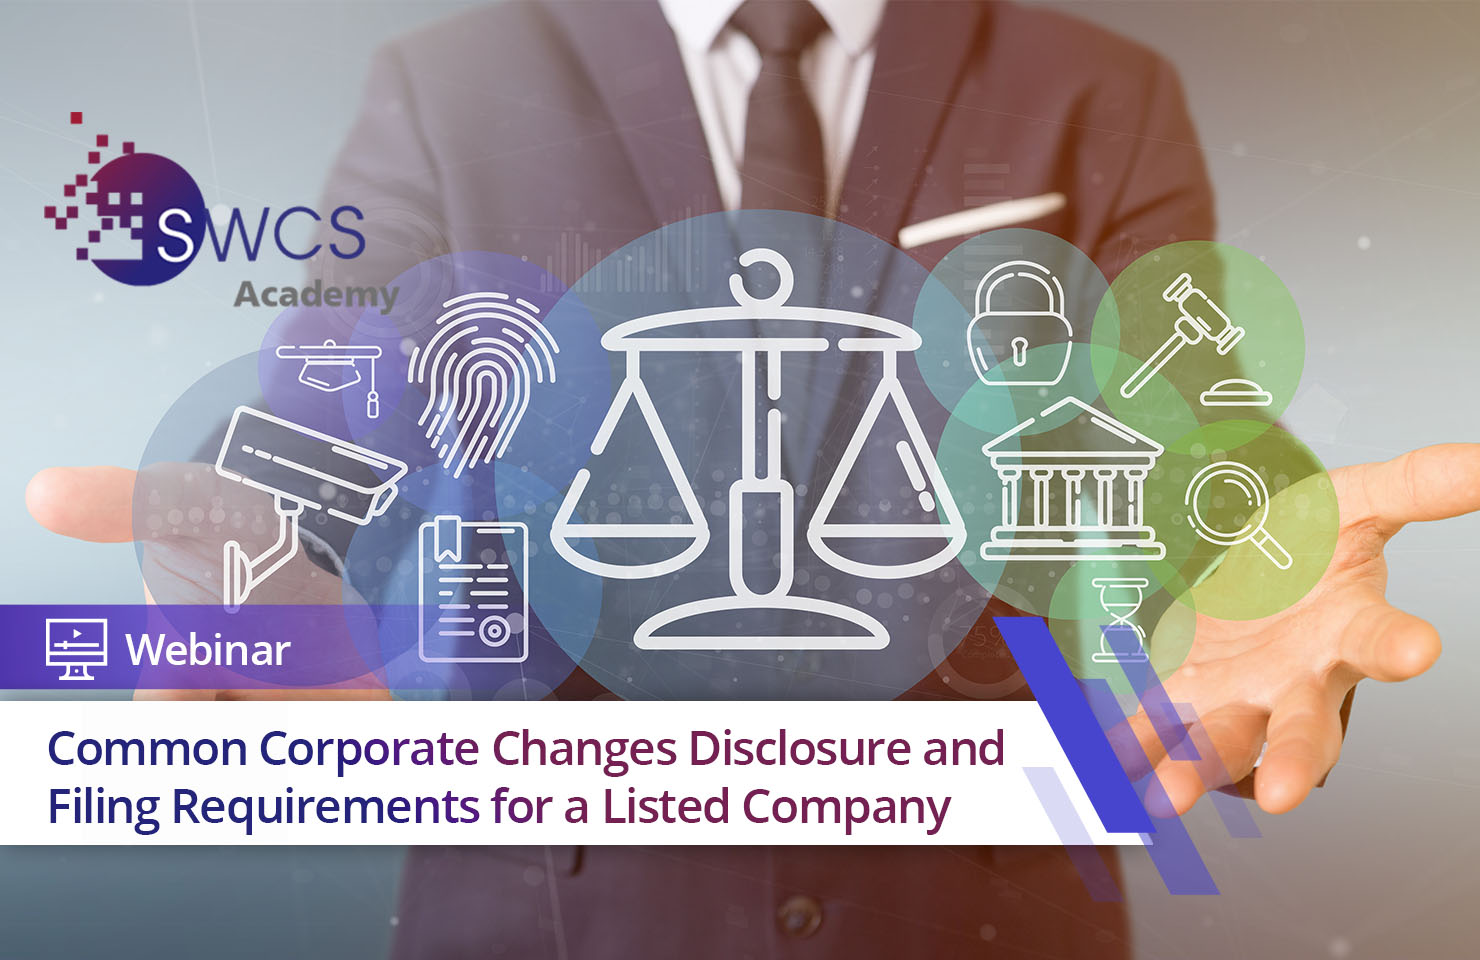 Common Corporate Changes Disclosure and Filing Requirements for a Listed Company